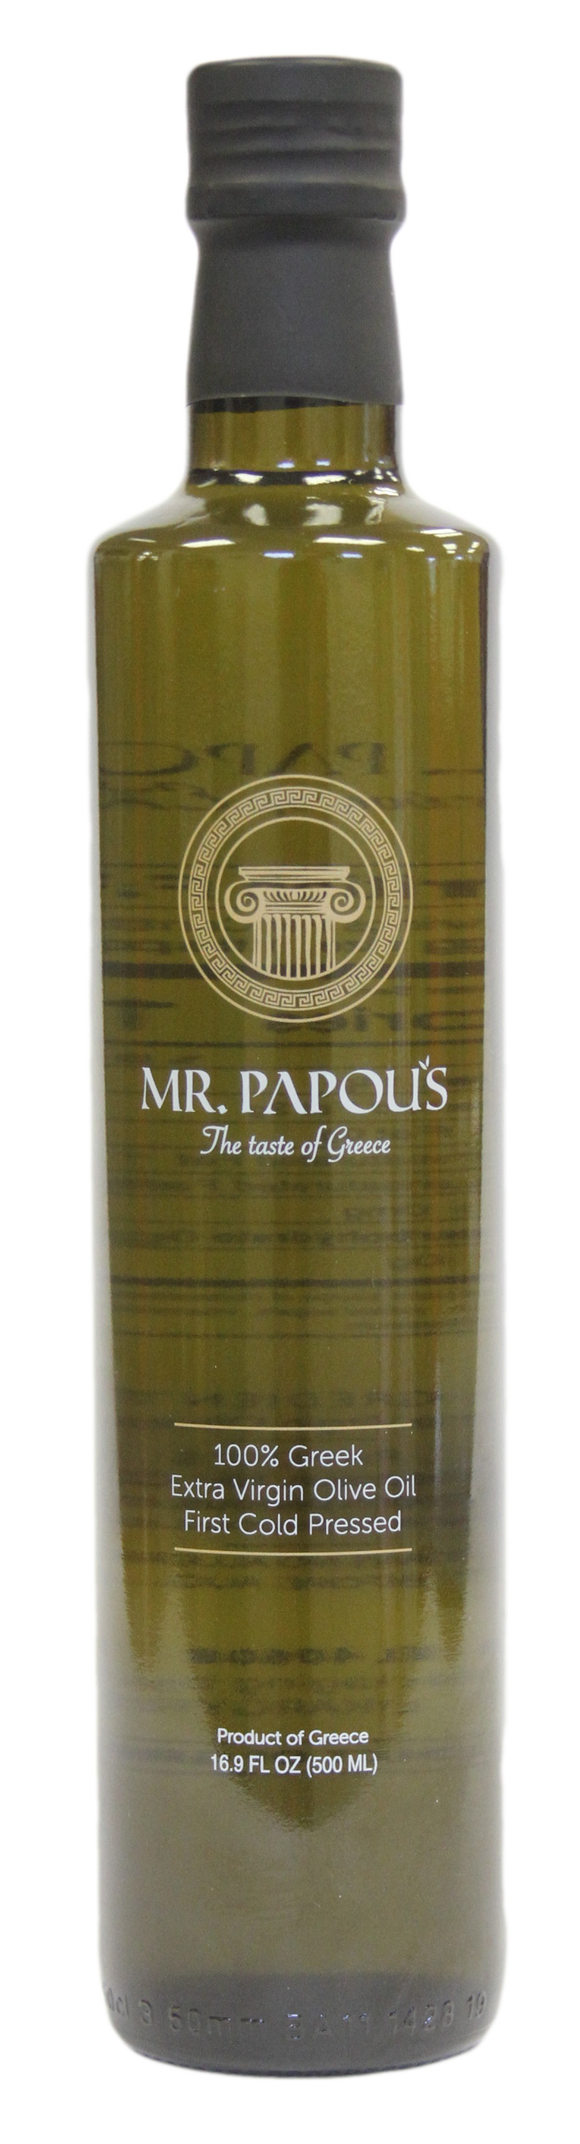 Mr. Papou's | 500 ml -16.9 fl oz | Extra Virgin Olive Oil